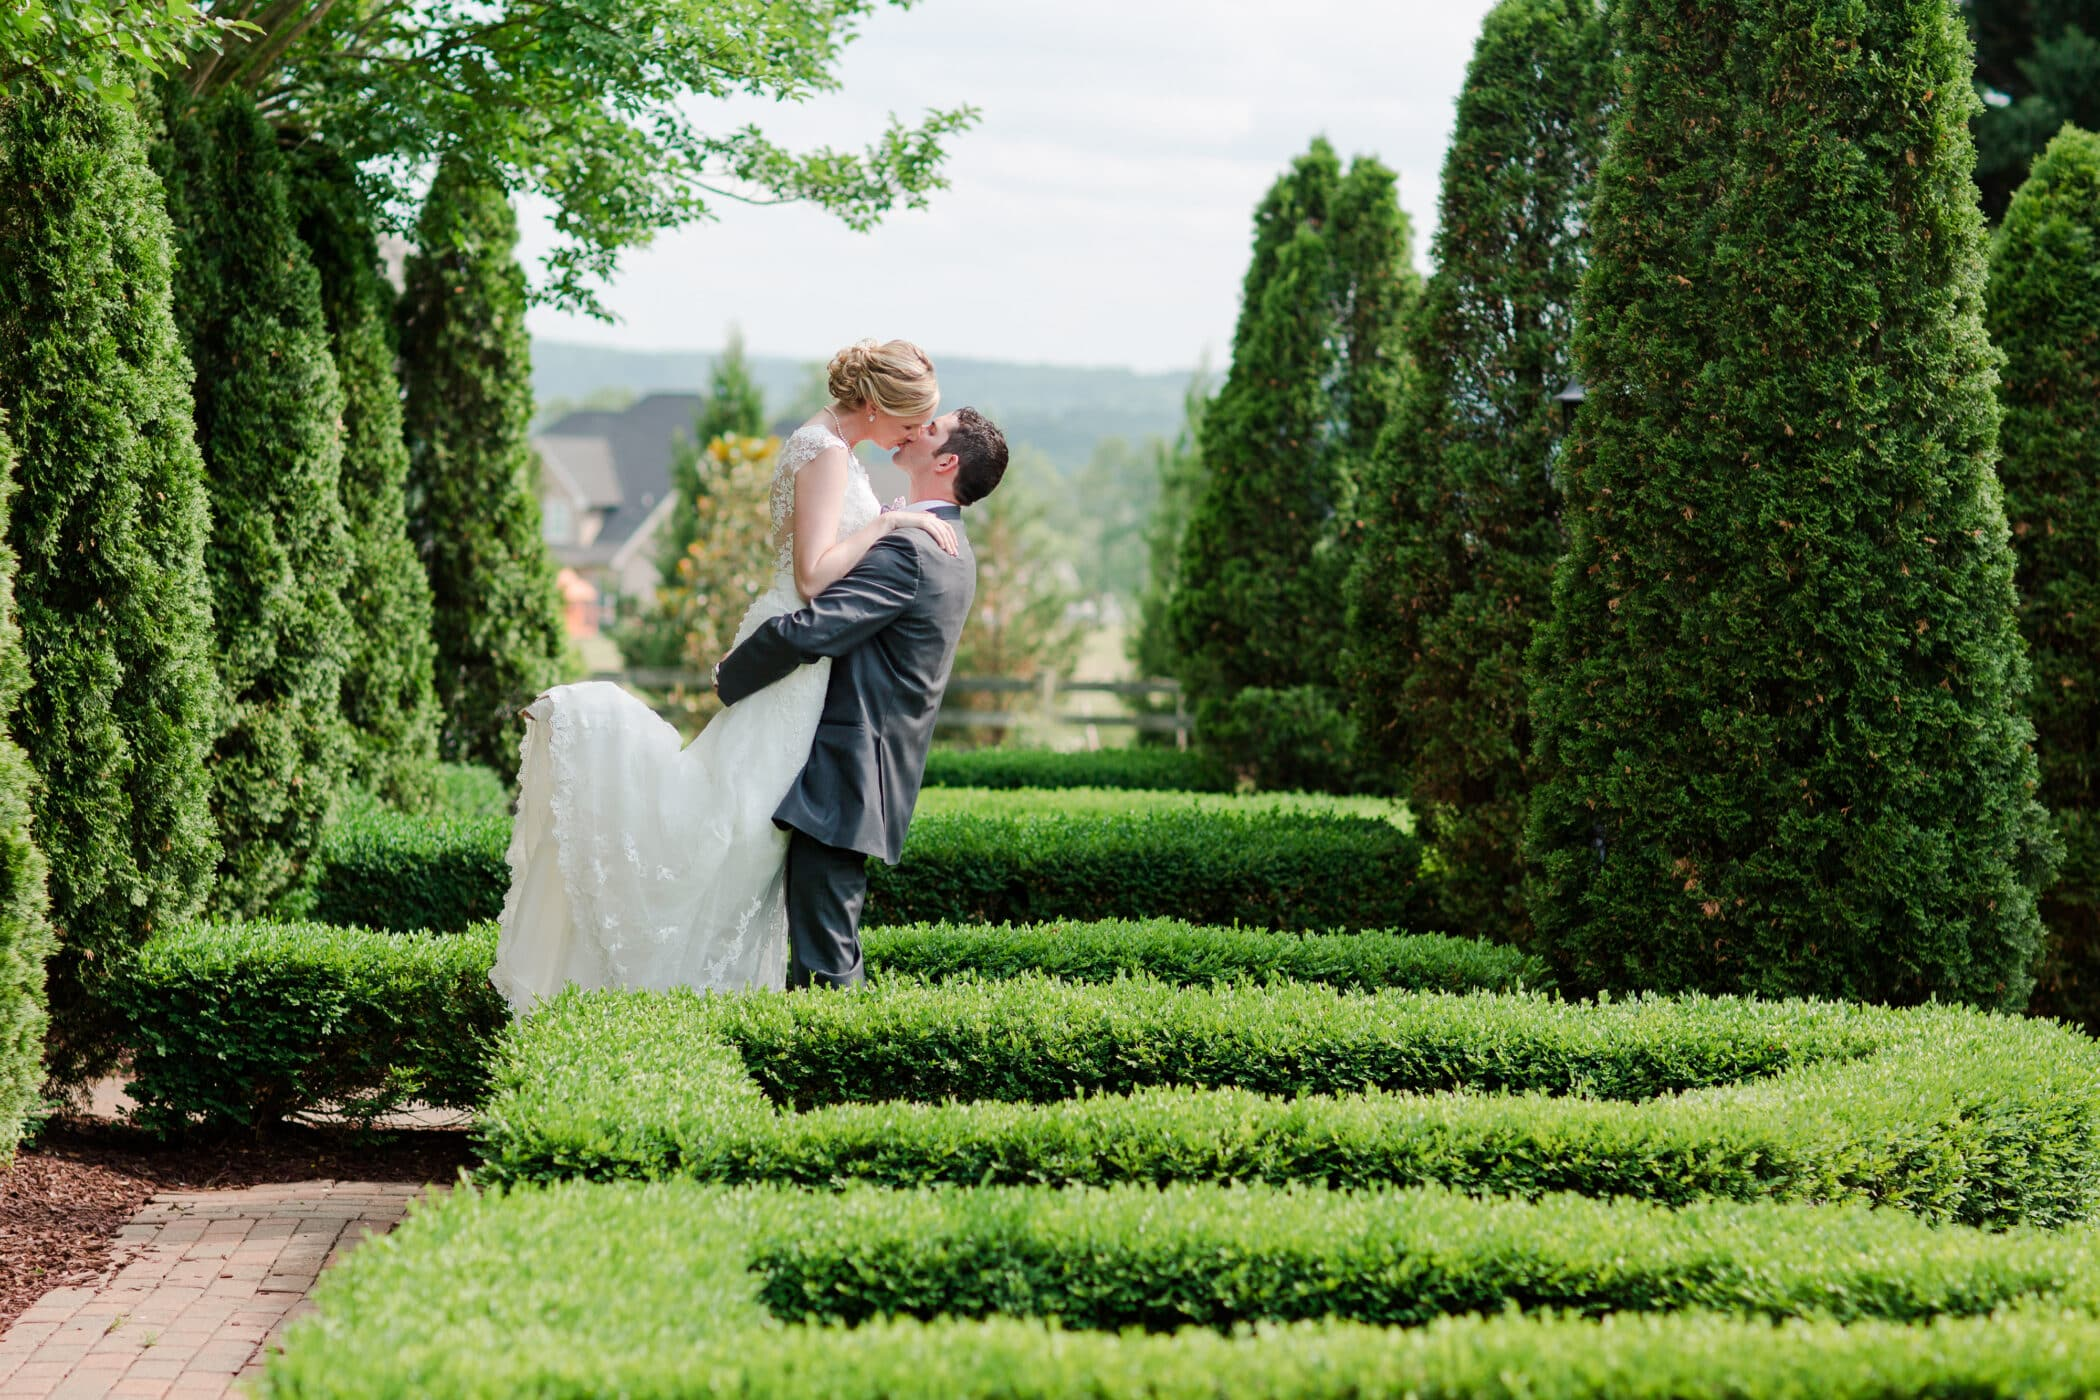 Selecting Your Virginia Wedding Venue | Entwined Events | Venue: West Manor Estate in Forest, VA | Photo Credit: Ashley & Tyler Harrinton Photography